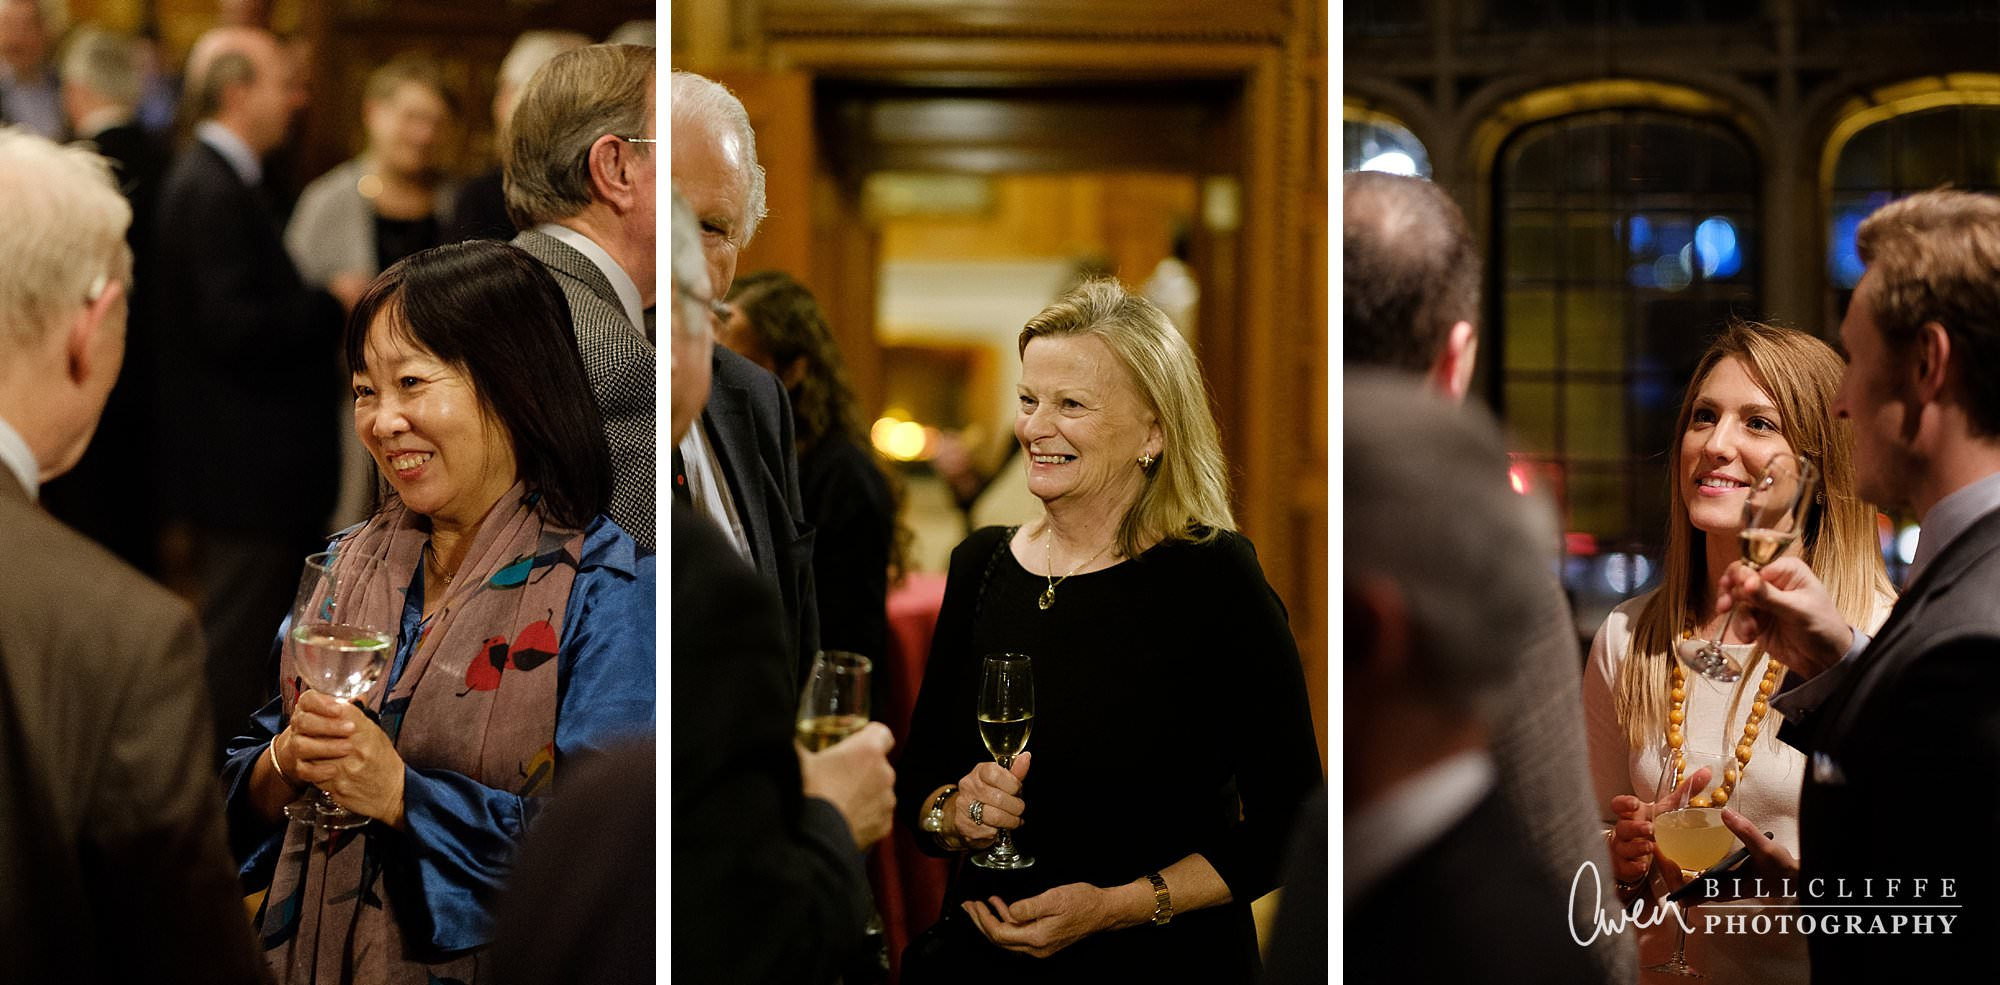 london event photographer two temple place stj 006 - An Evening Reception at Two Temple Place